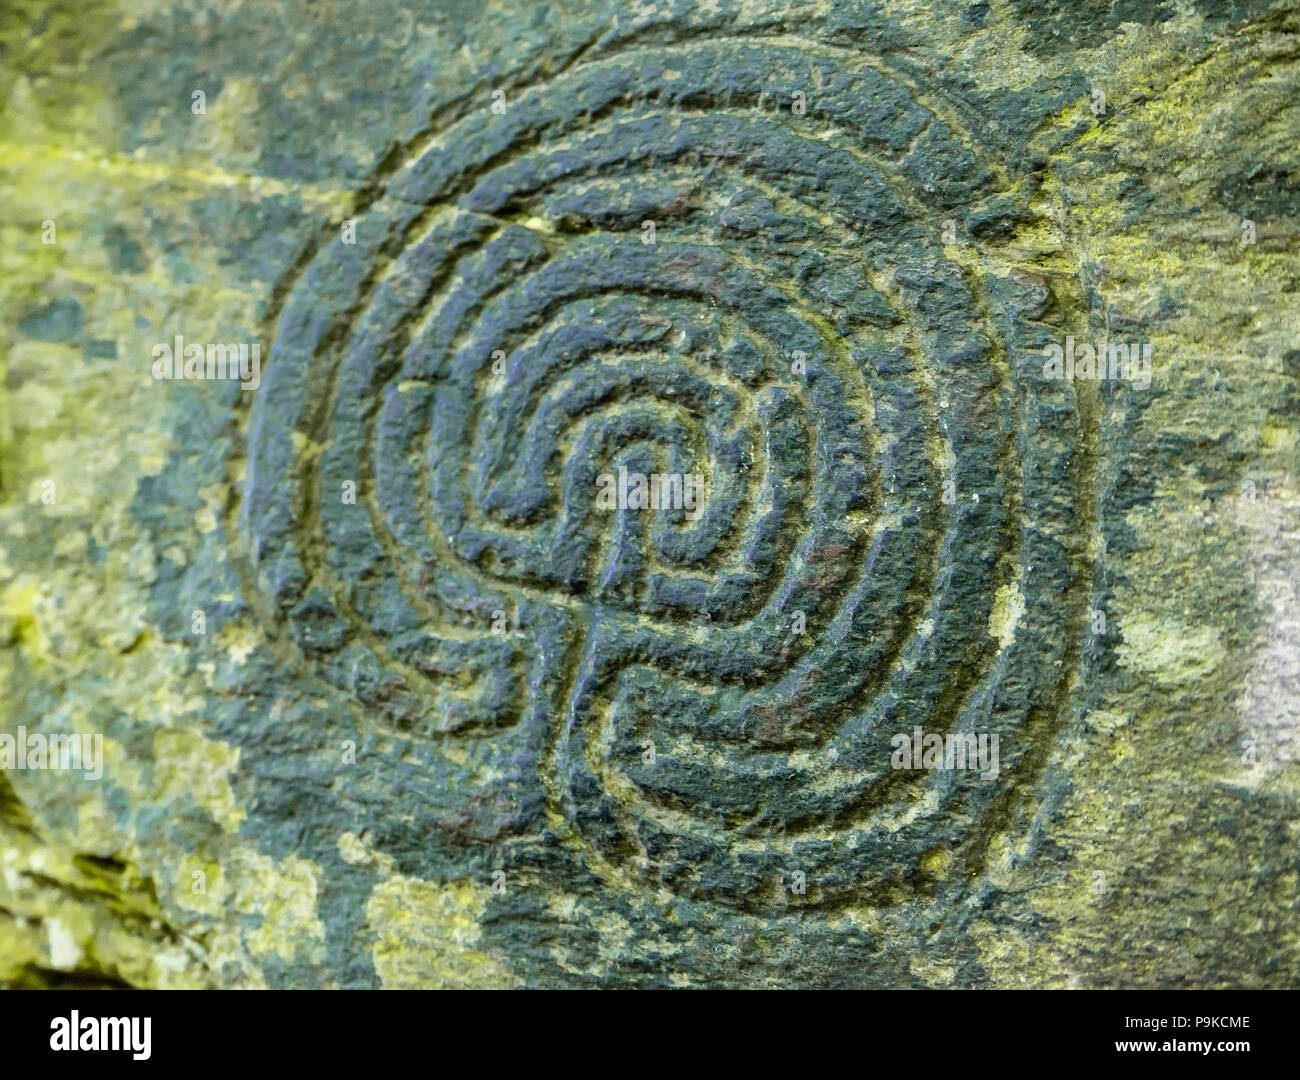 Carvings said to originate from Celtic fertility symbology in the stonework of the derelict Trethevy Mill in Rocky Valley, Cornwall, England, UK - Stock Image